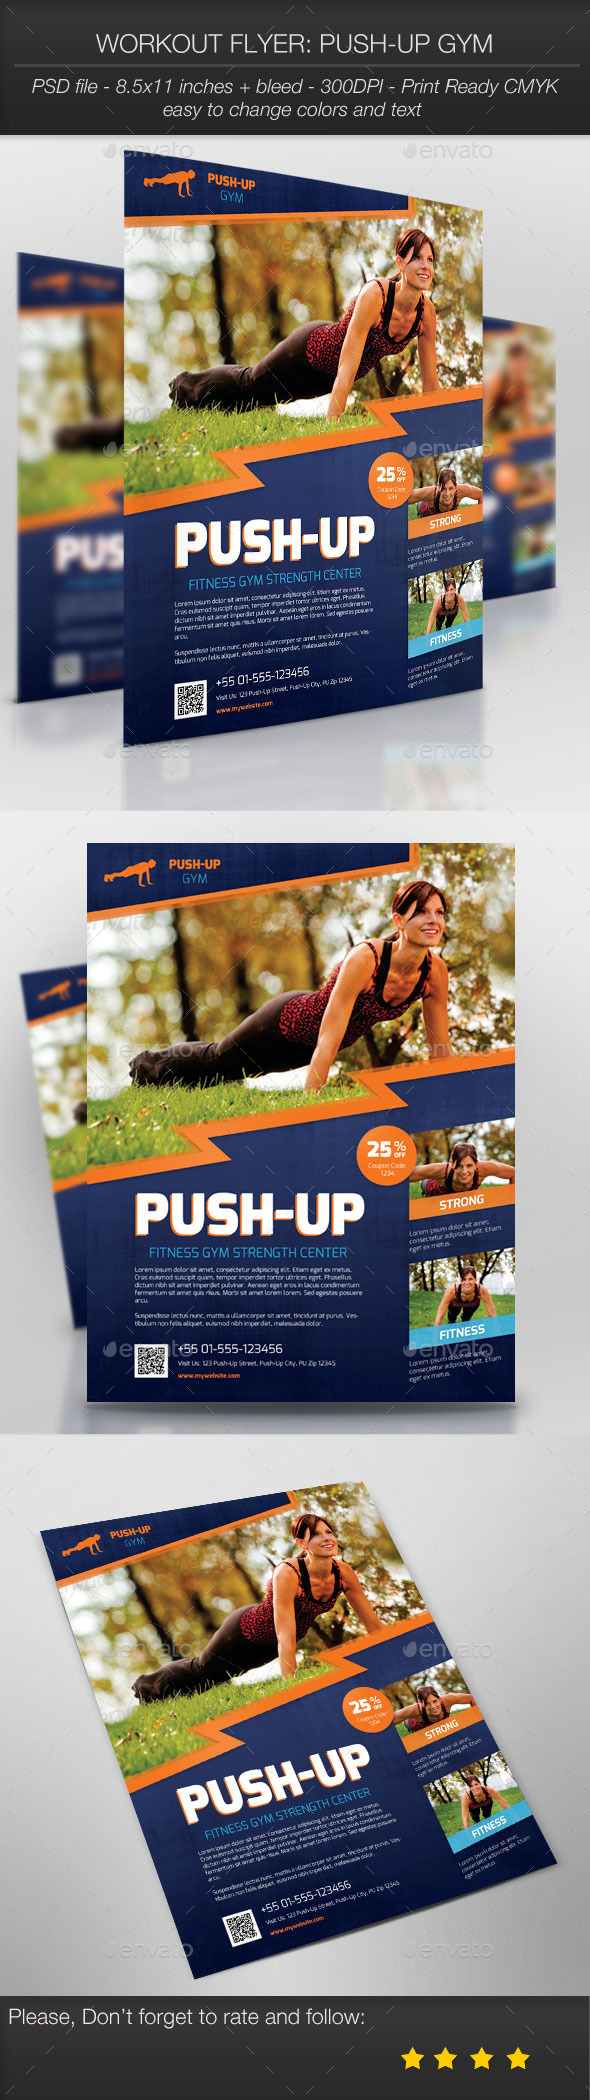 Workout Flyer: Push-Up Gym - Sports Events